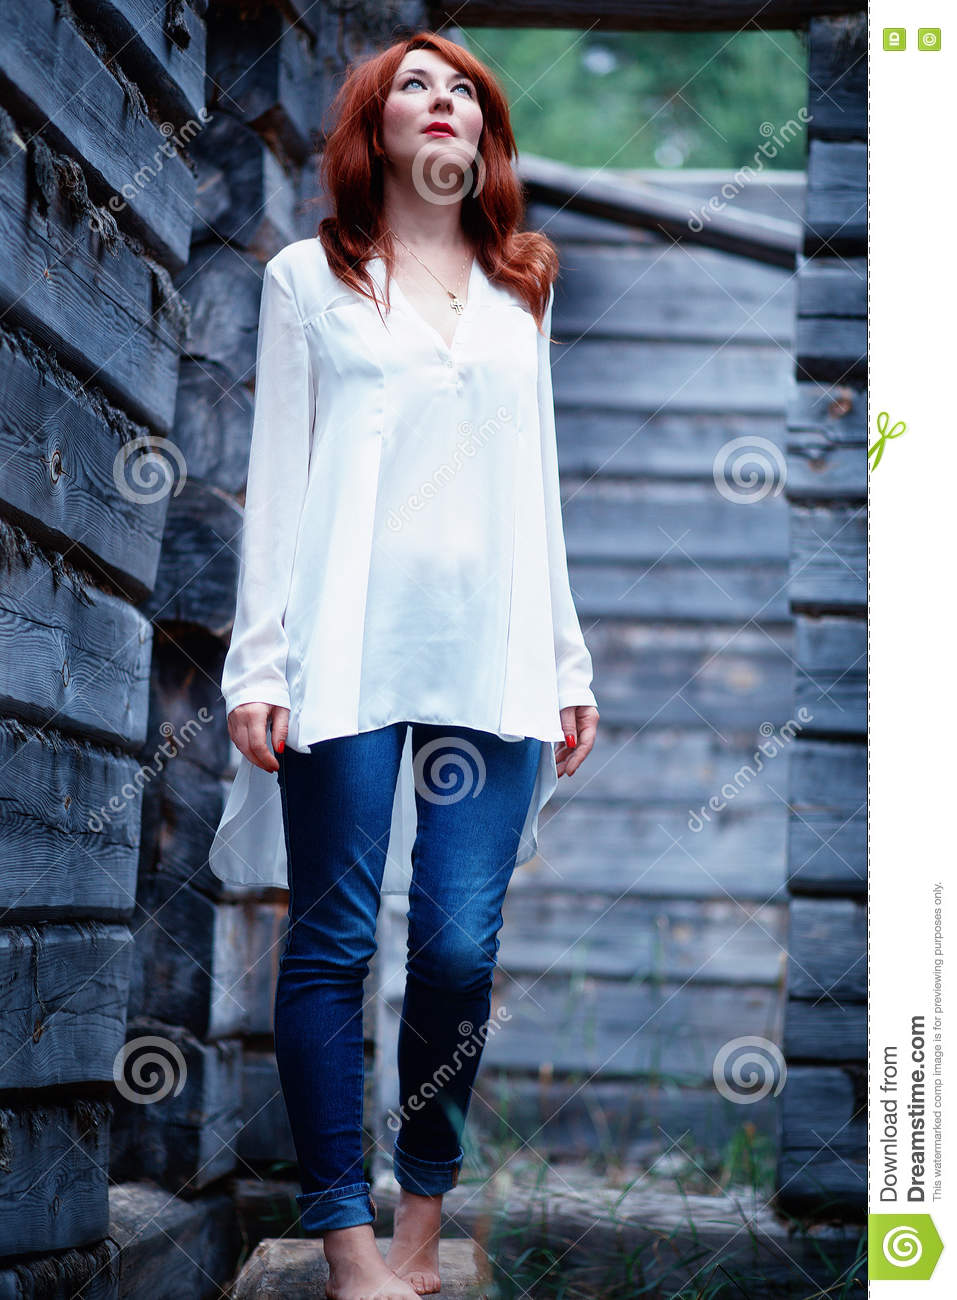 aa044c1b57f Girl In White Shirt And Blue Jeans Stock Image - Image of cute ...